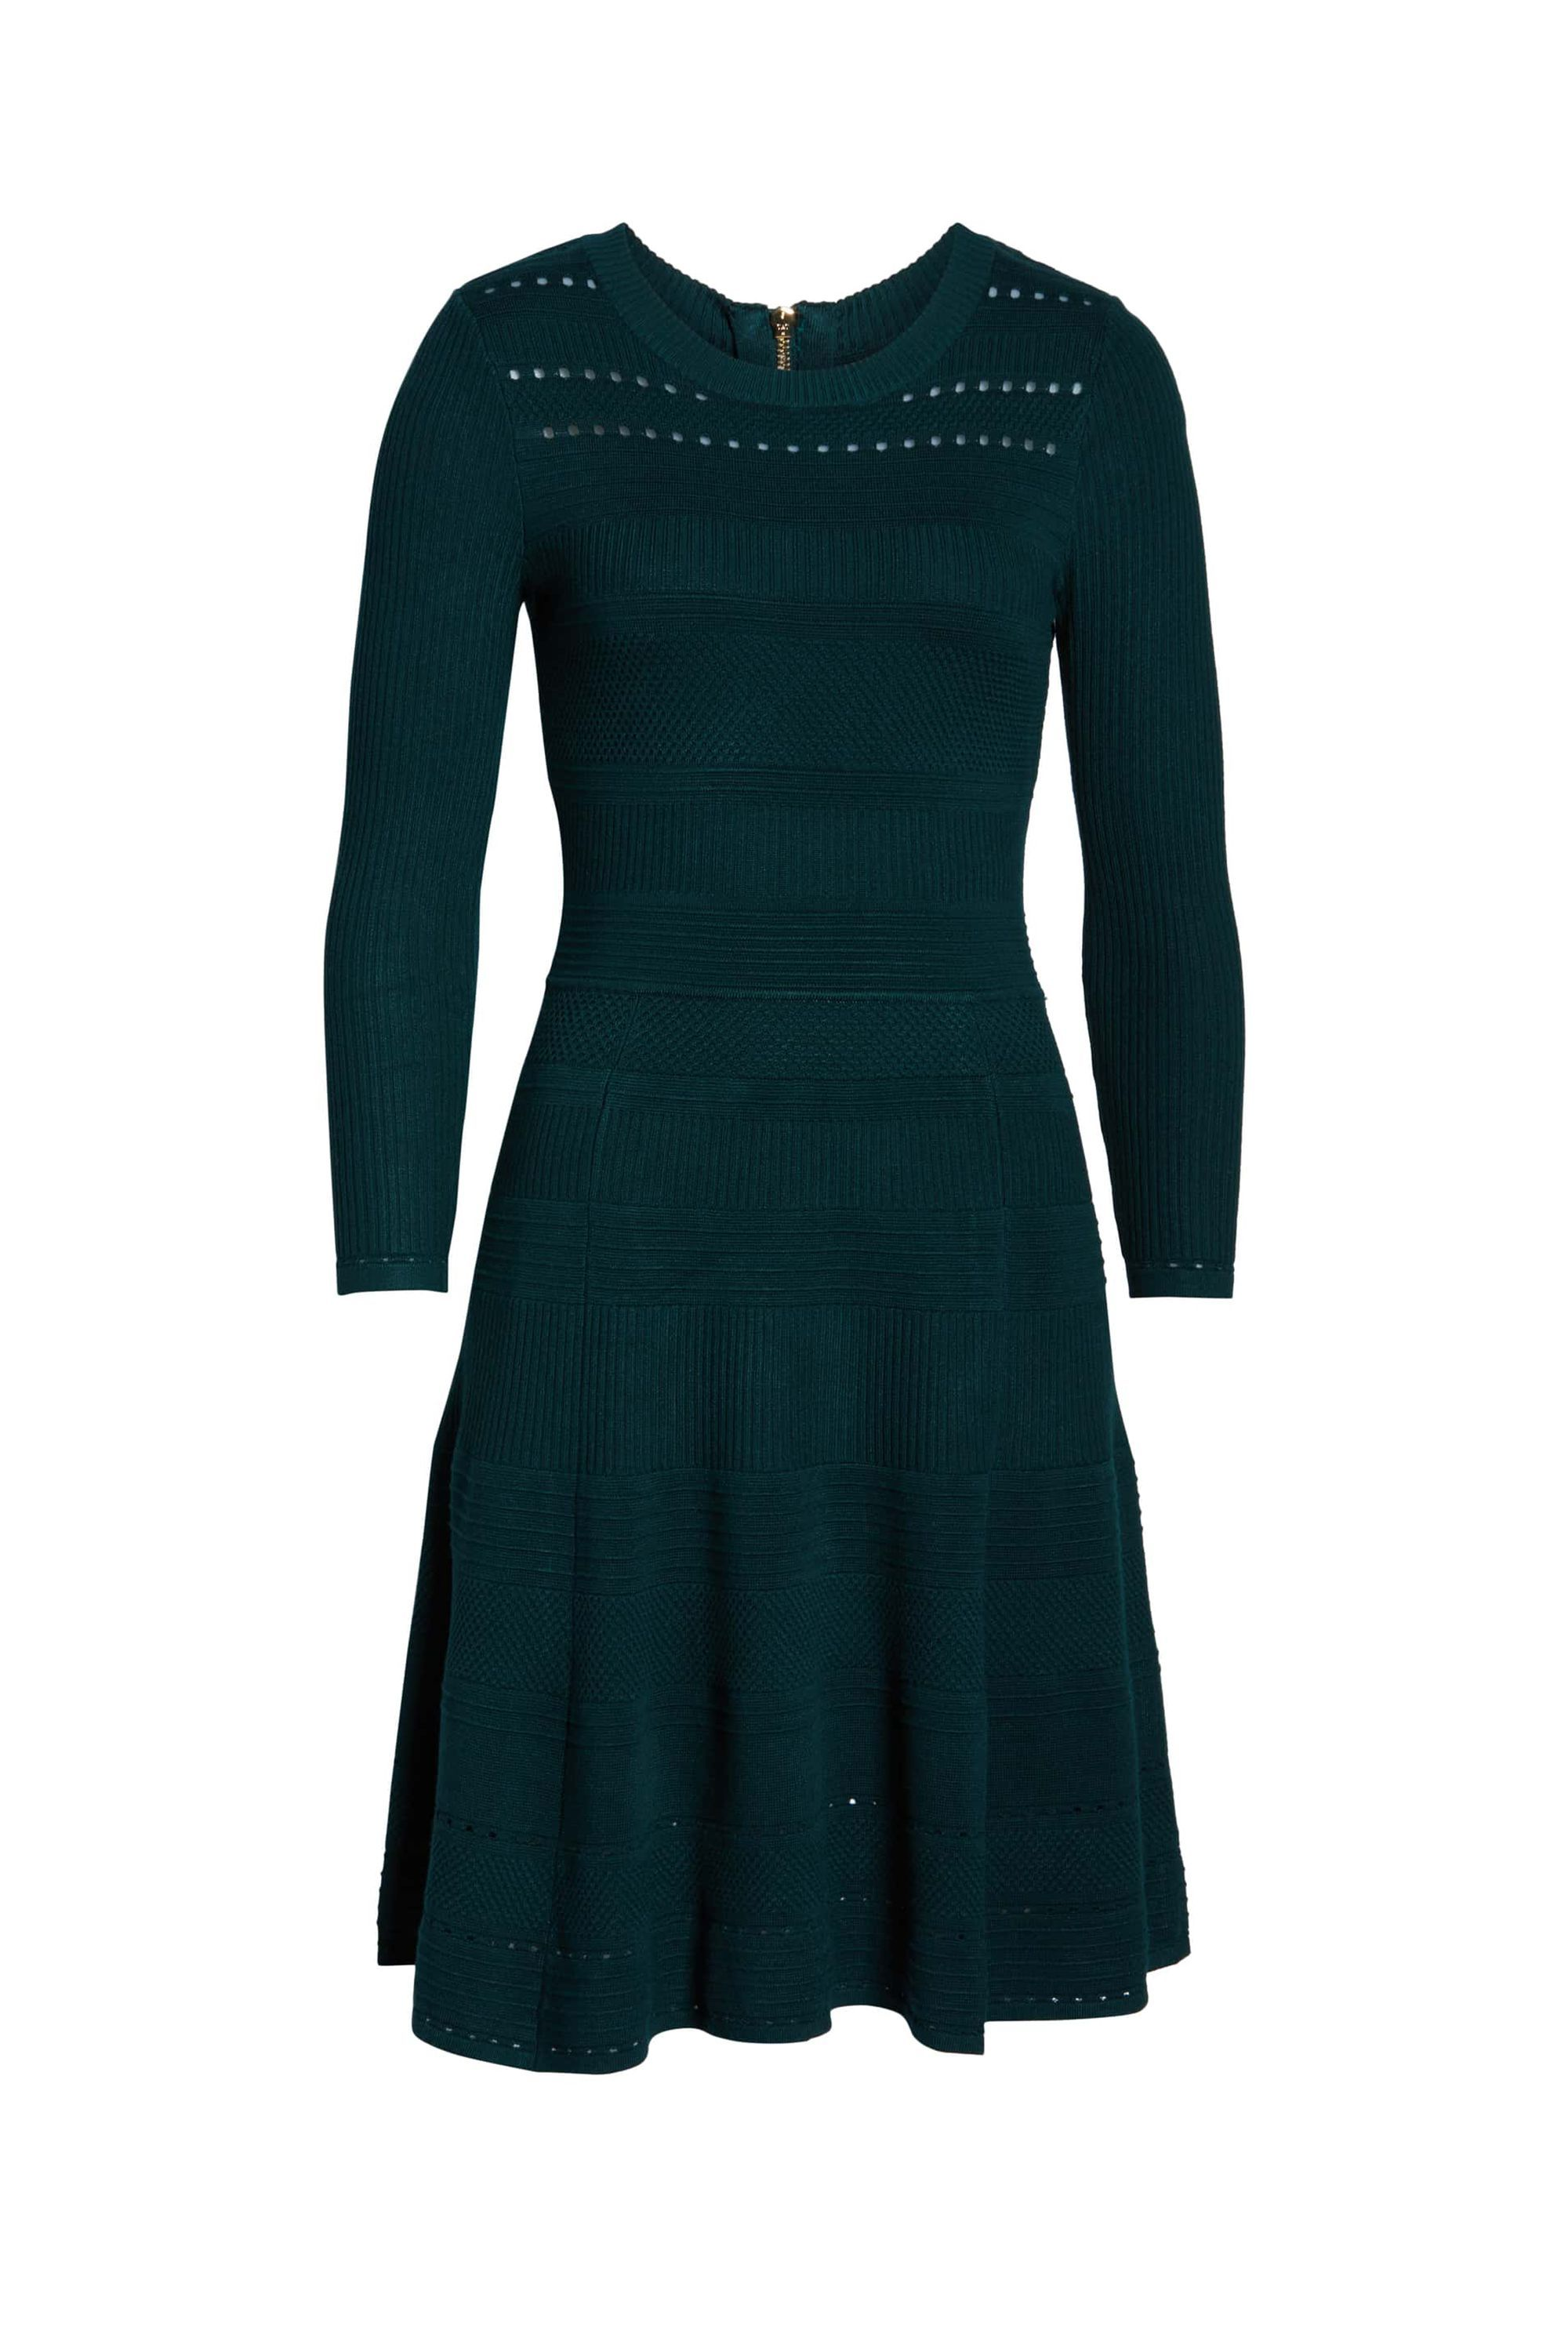 Cute Winter Work Dresses - 17 Winter Work Dresses That Don t Require a Desk  Blanket 7fa1f002b